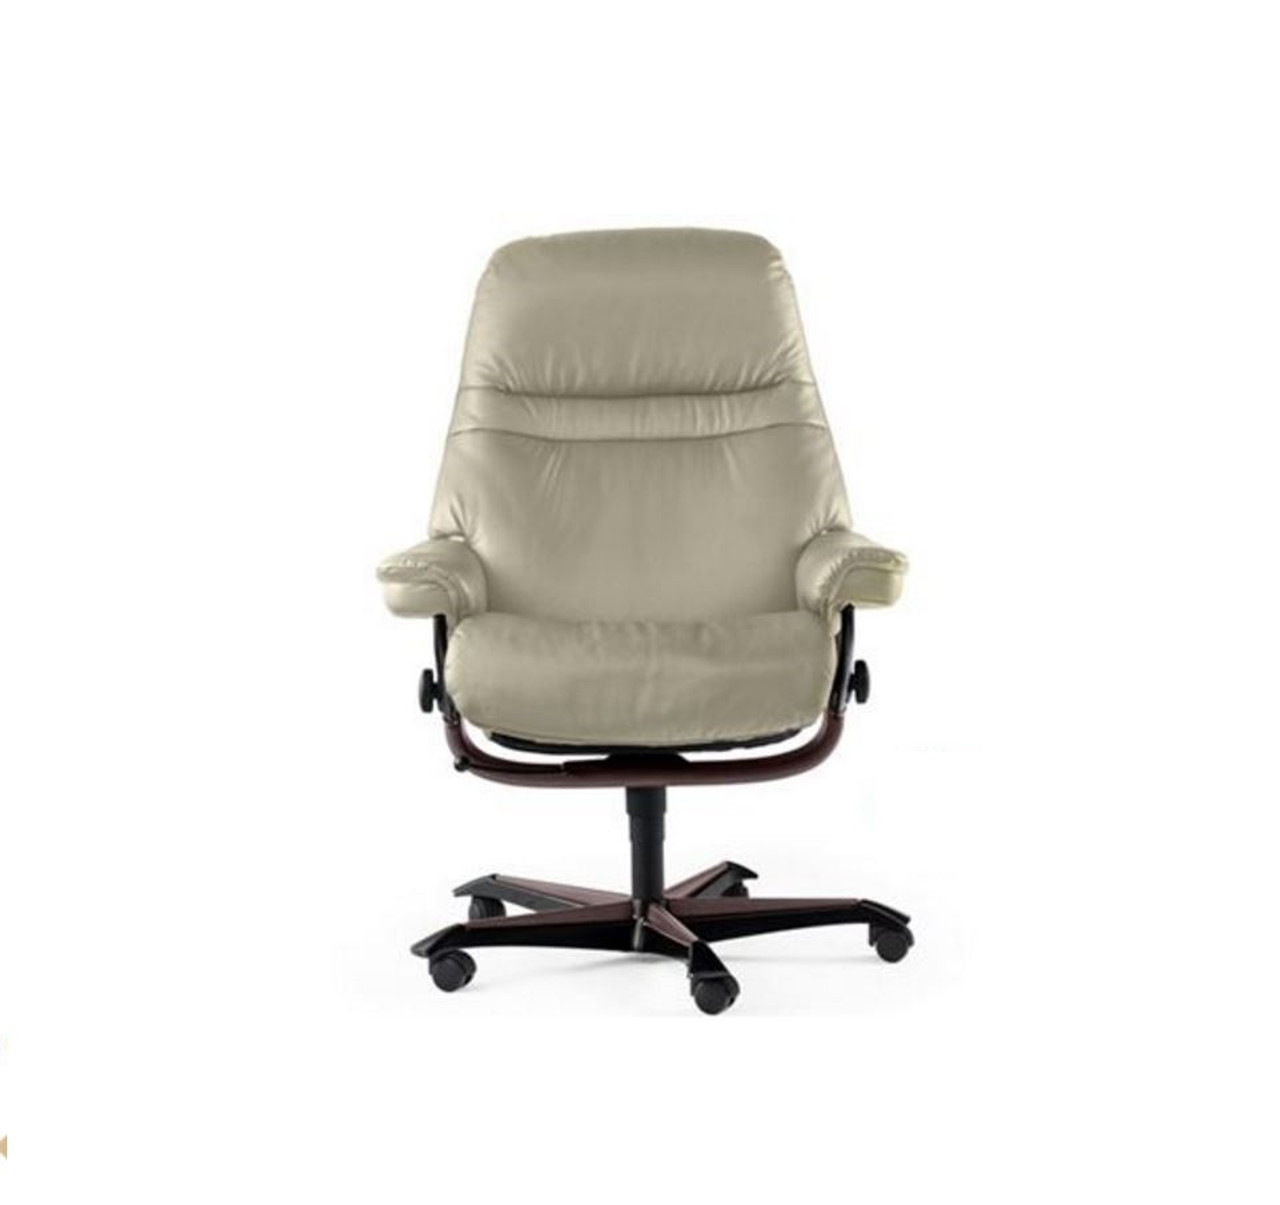 ekornes stressless sunrise office chair clearance priced model